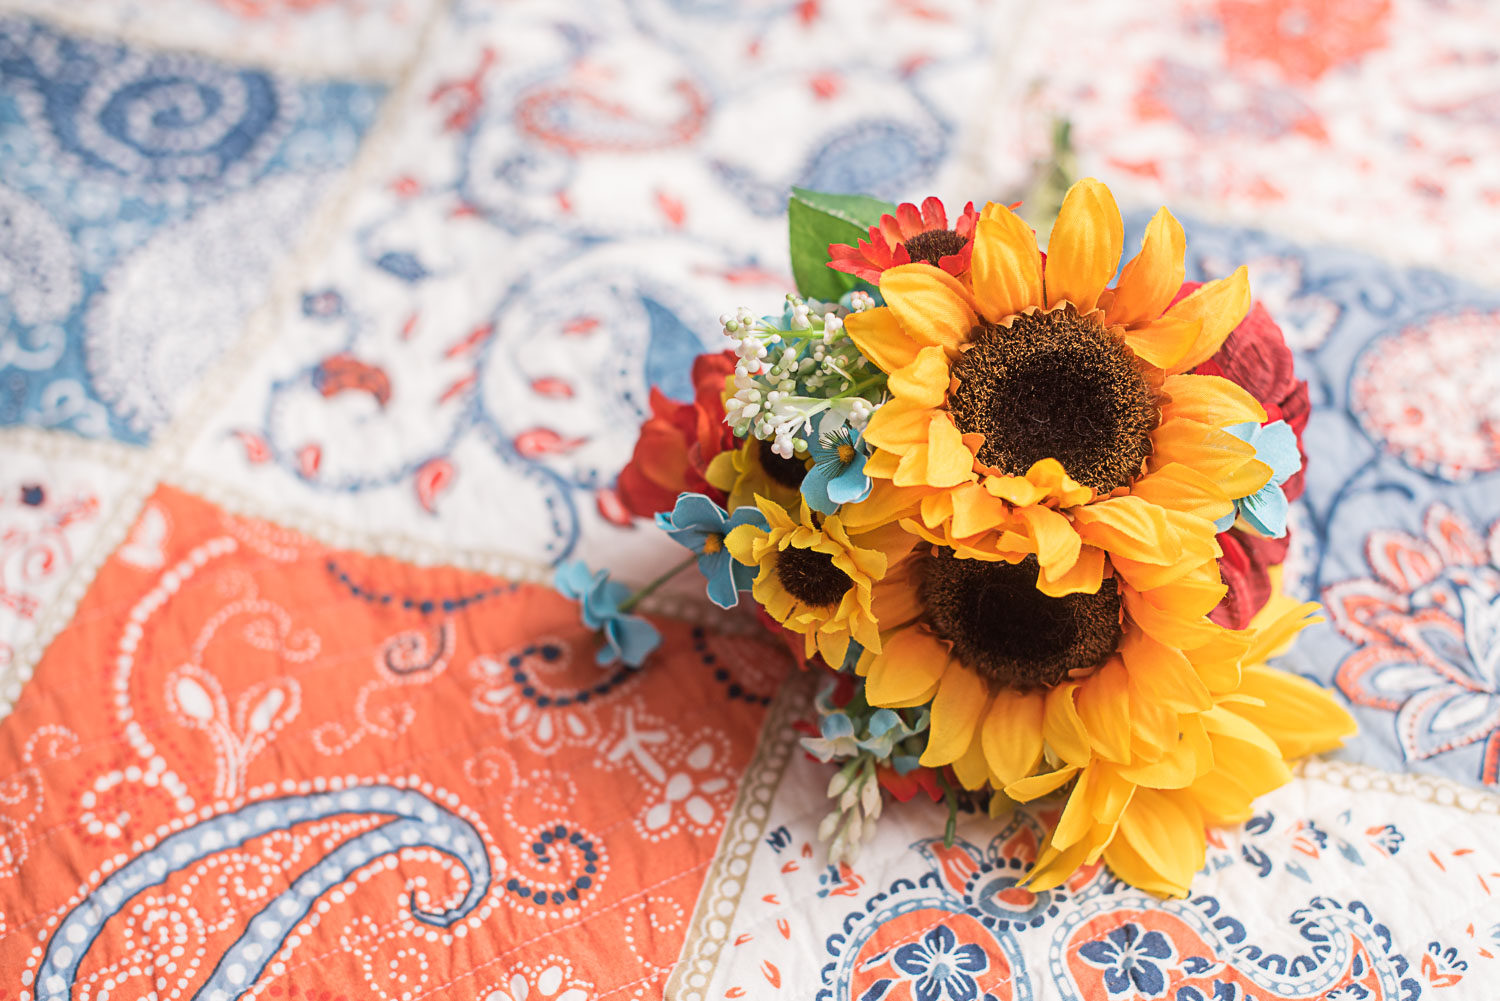 10 bride's bouquet of sunflowers on quilt.jpg